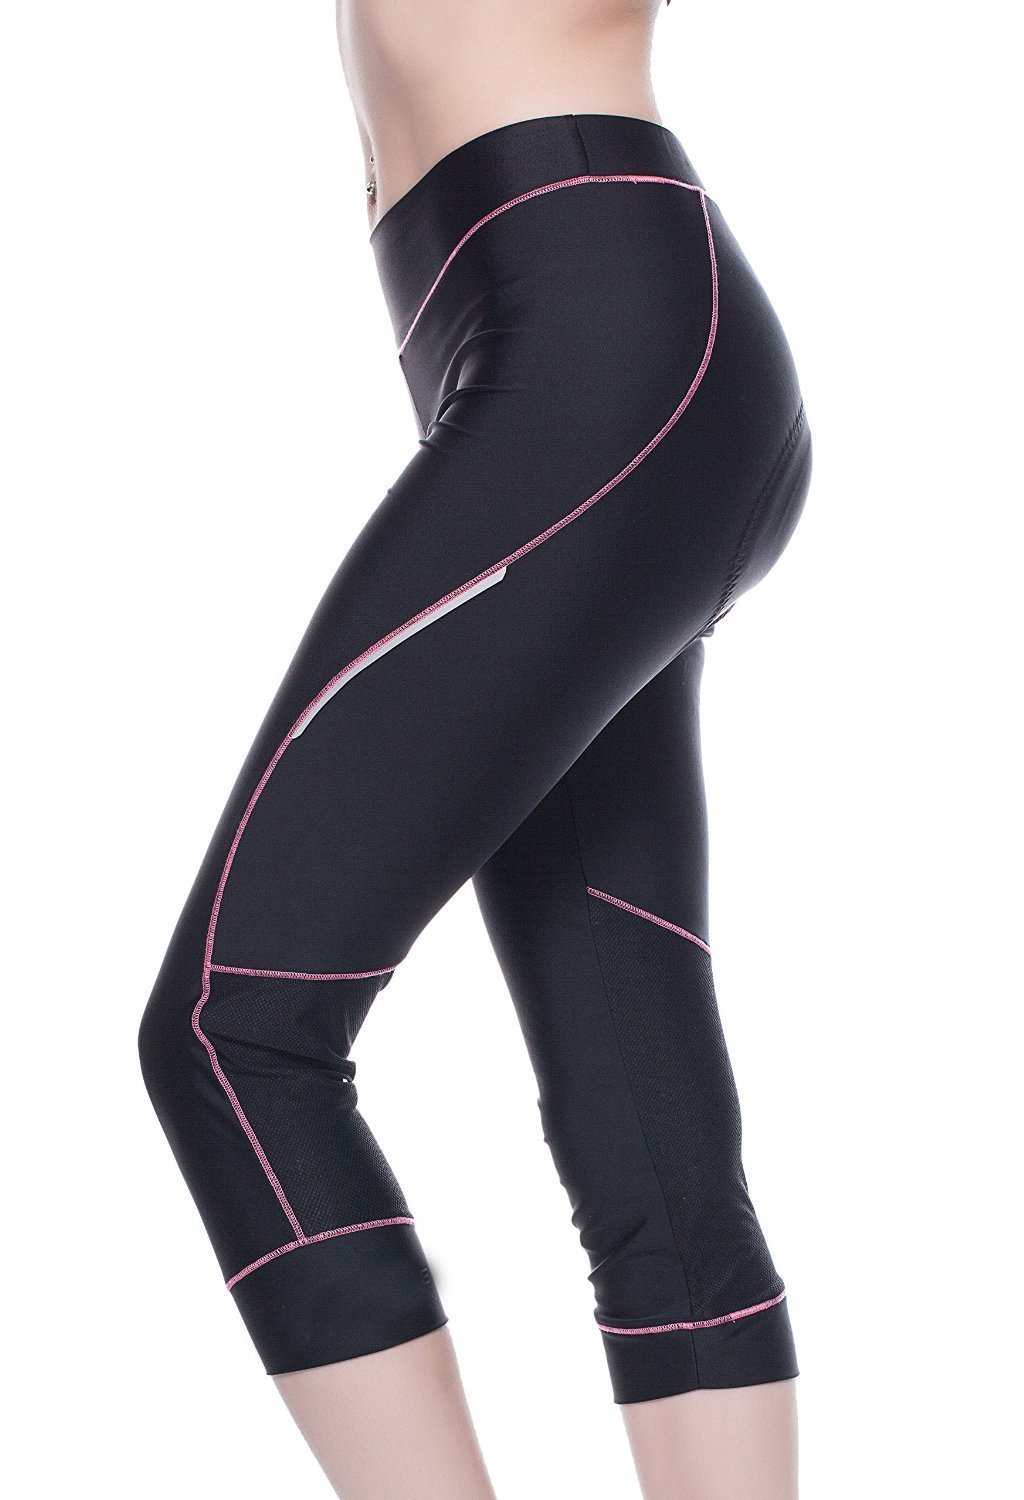 Bicycle Pants Women - 4ucycling Premium 3d Padded Breathable 3/4 Cycling Tights - Maximum Comfort to the Thighs - Great for Competitive - Leisure Cycling - 100% Satisfaction Guaranteed